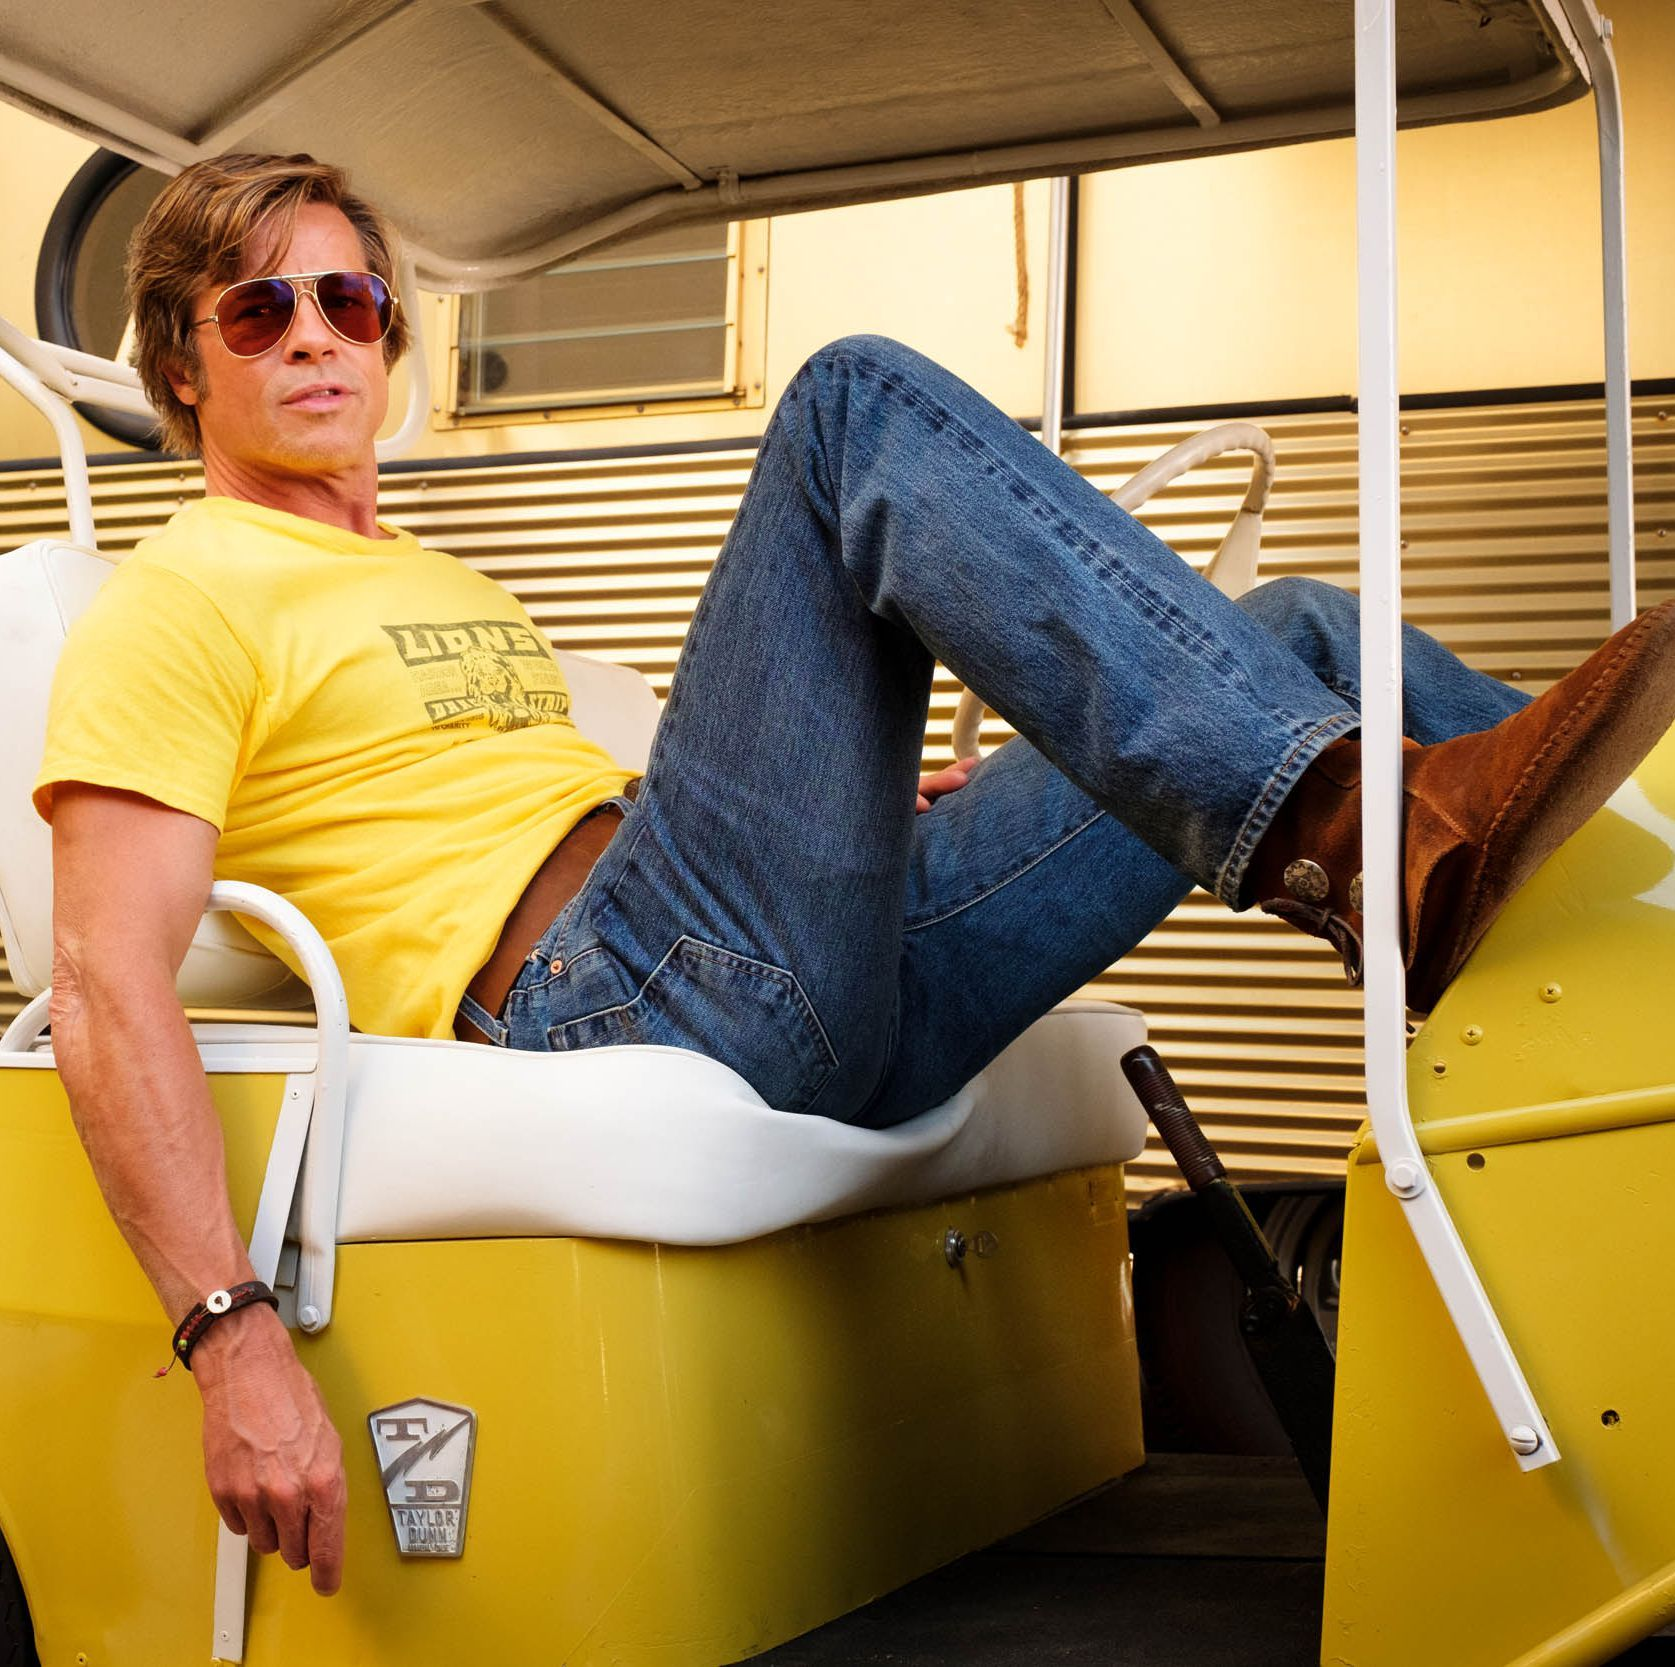 37+ Where to see once upon a time in hollywood ideas